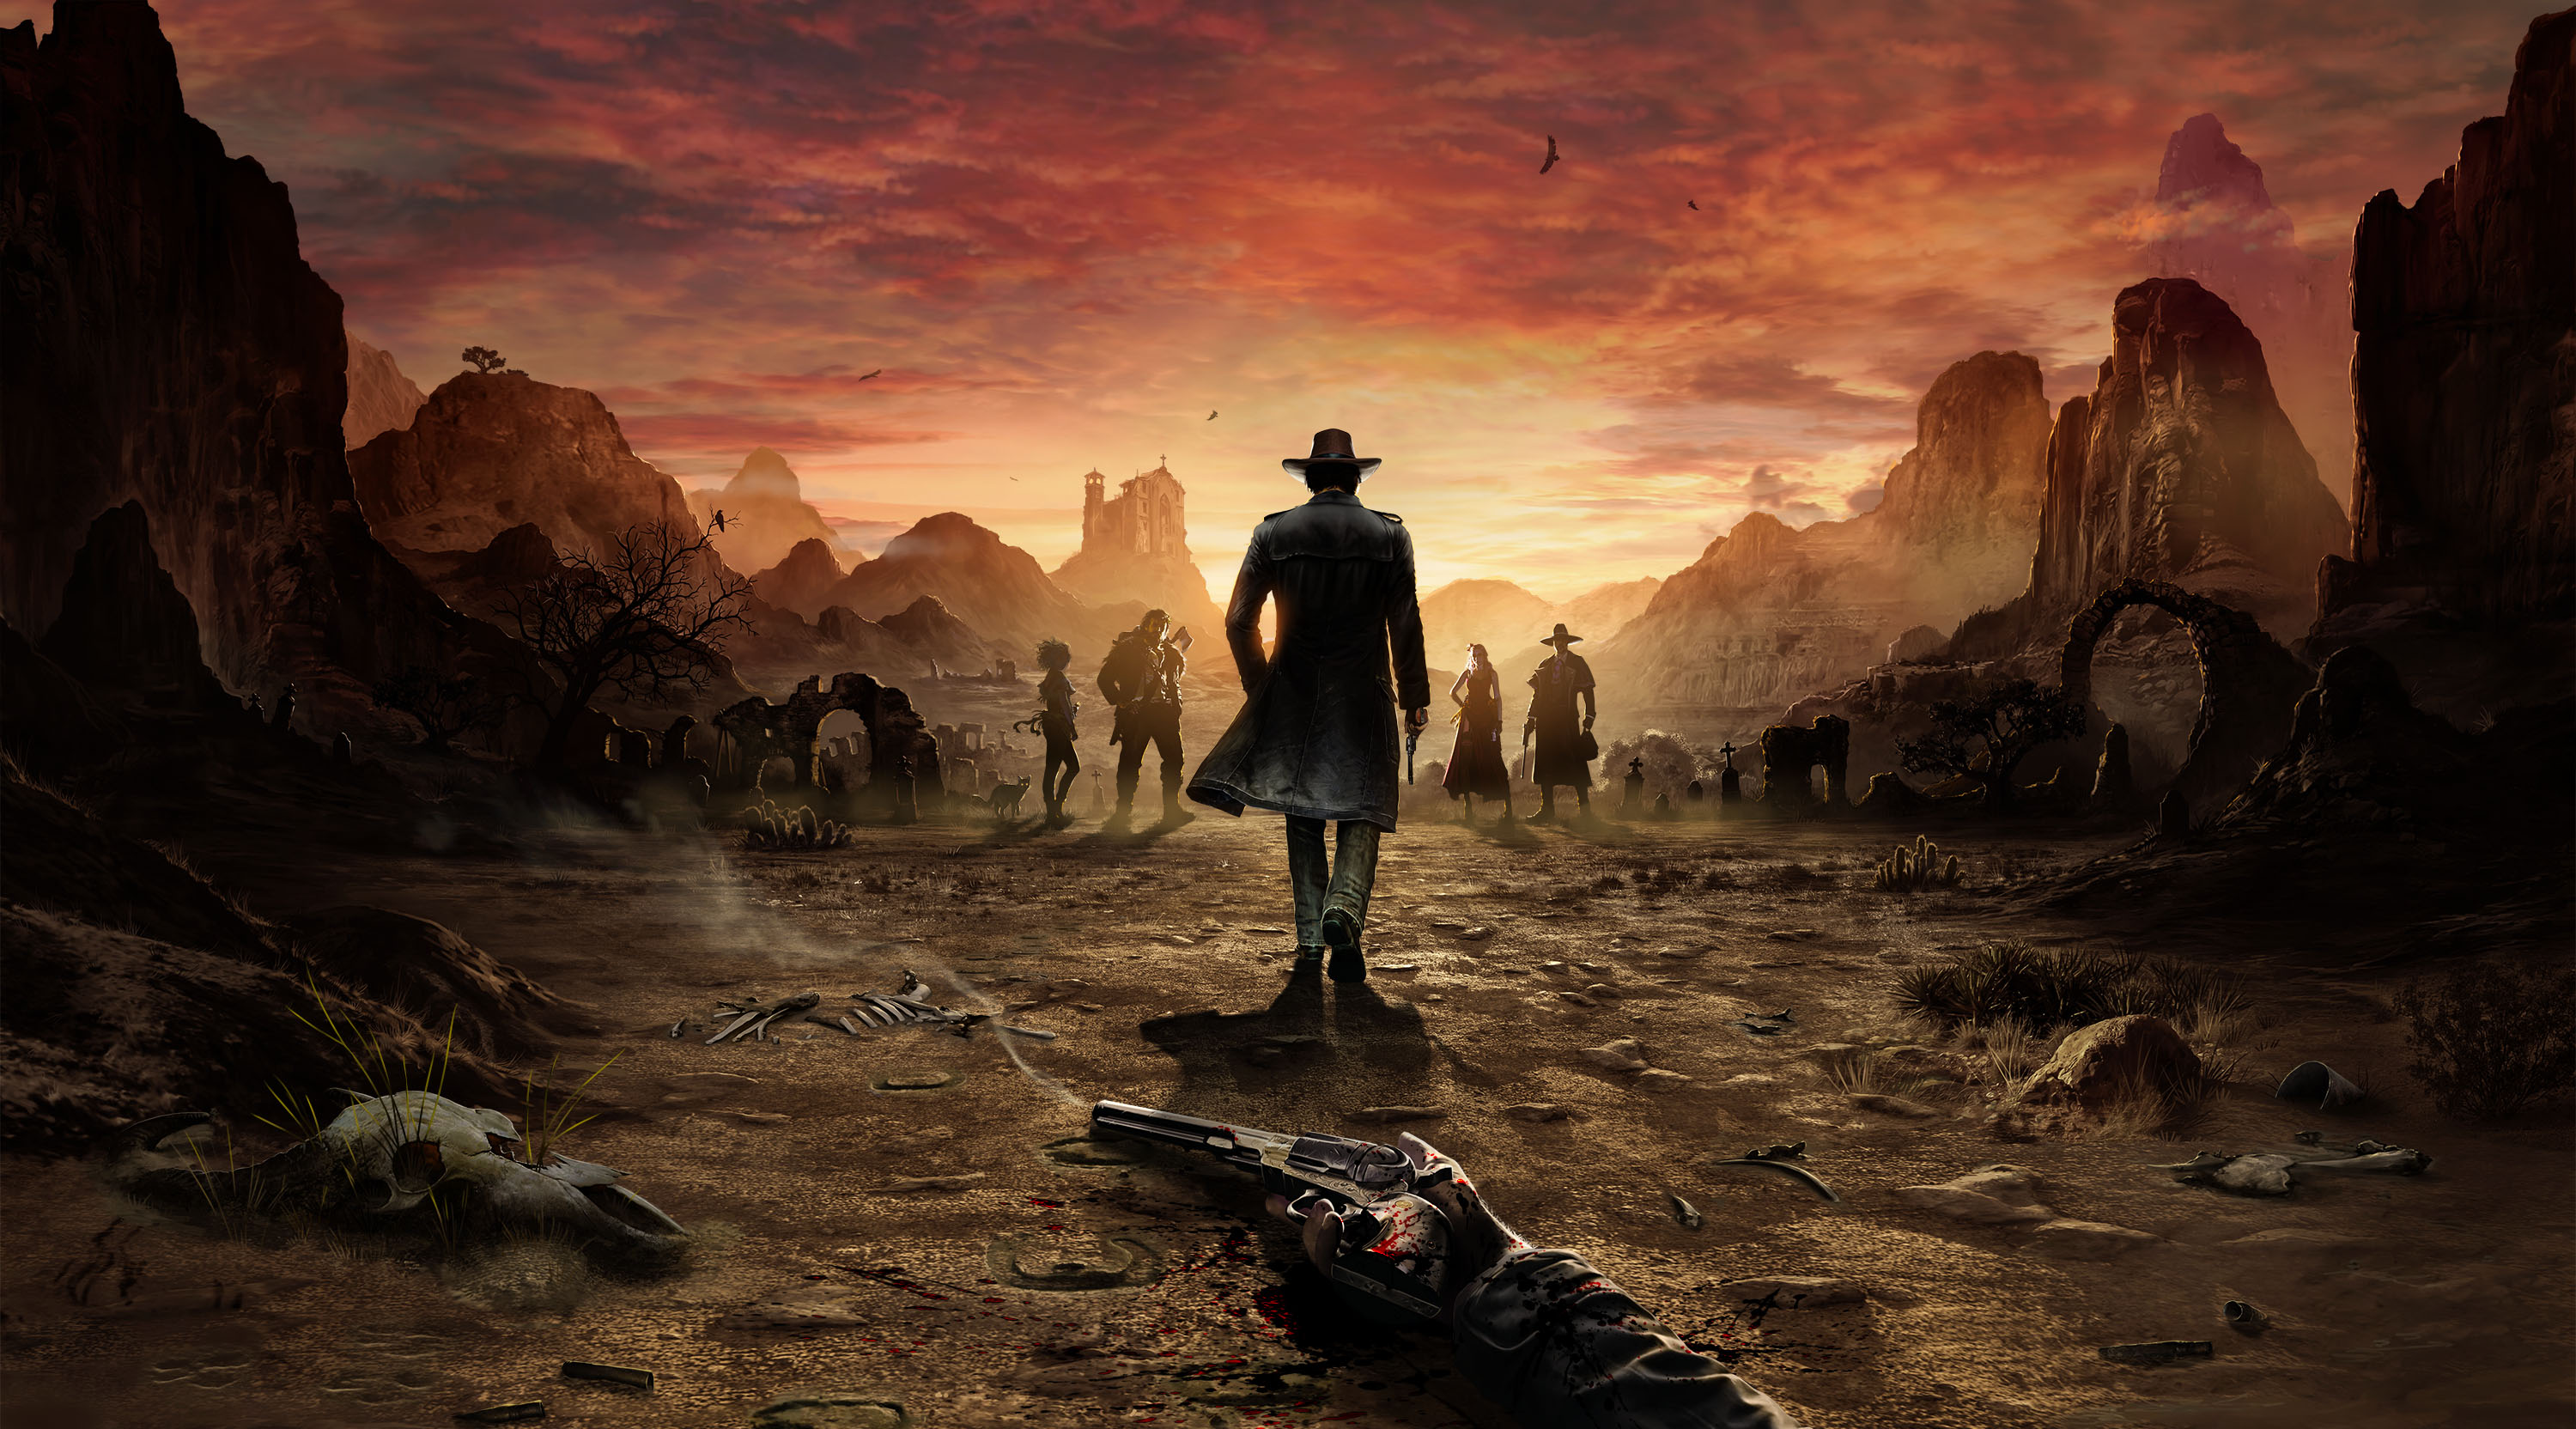 Key art for Desperados 3 shows the main character, Cooper, walking into the sunset. In the fore ground a dead man's hand holds a pistol.